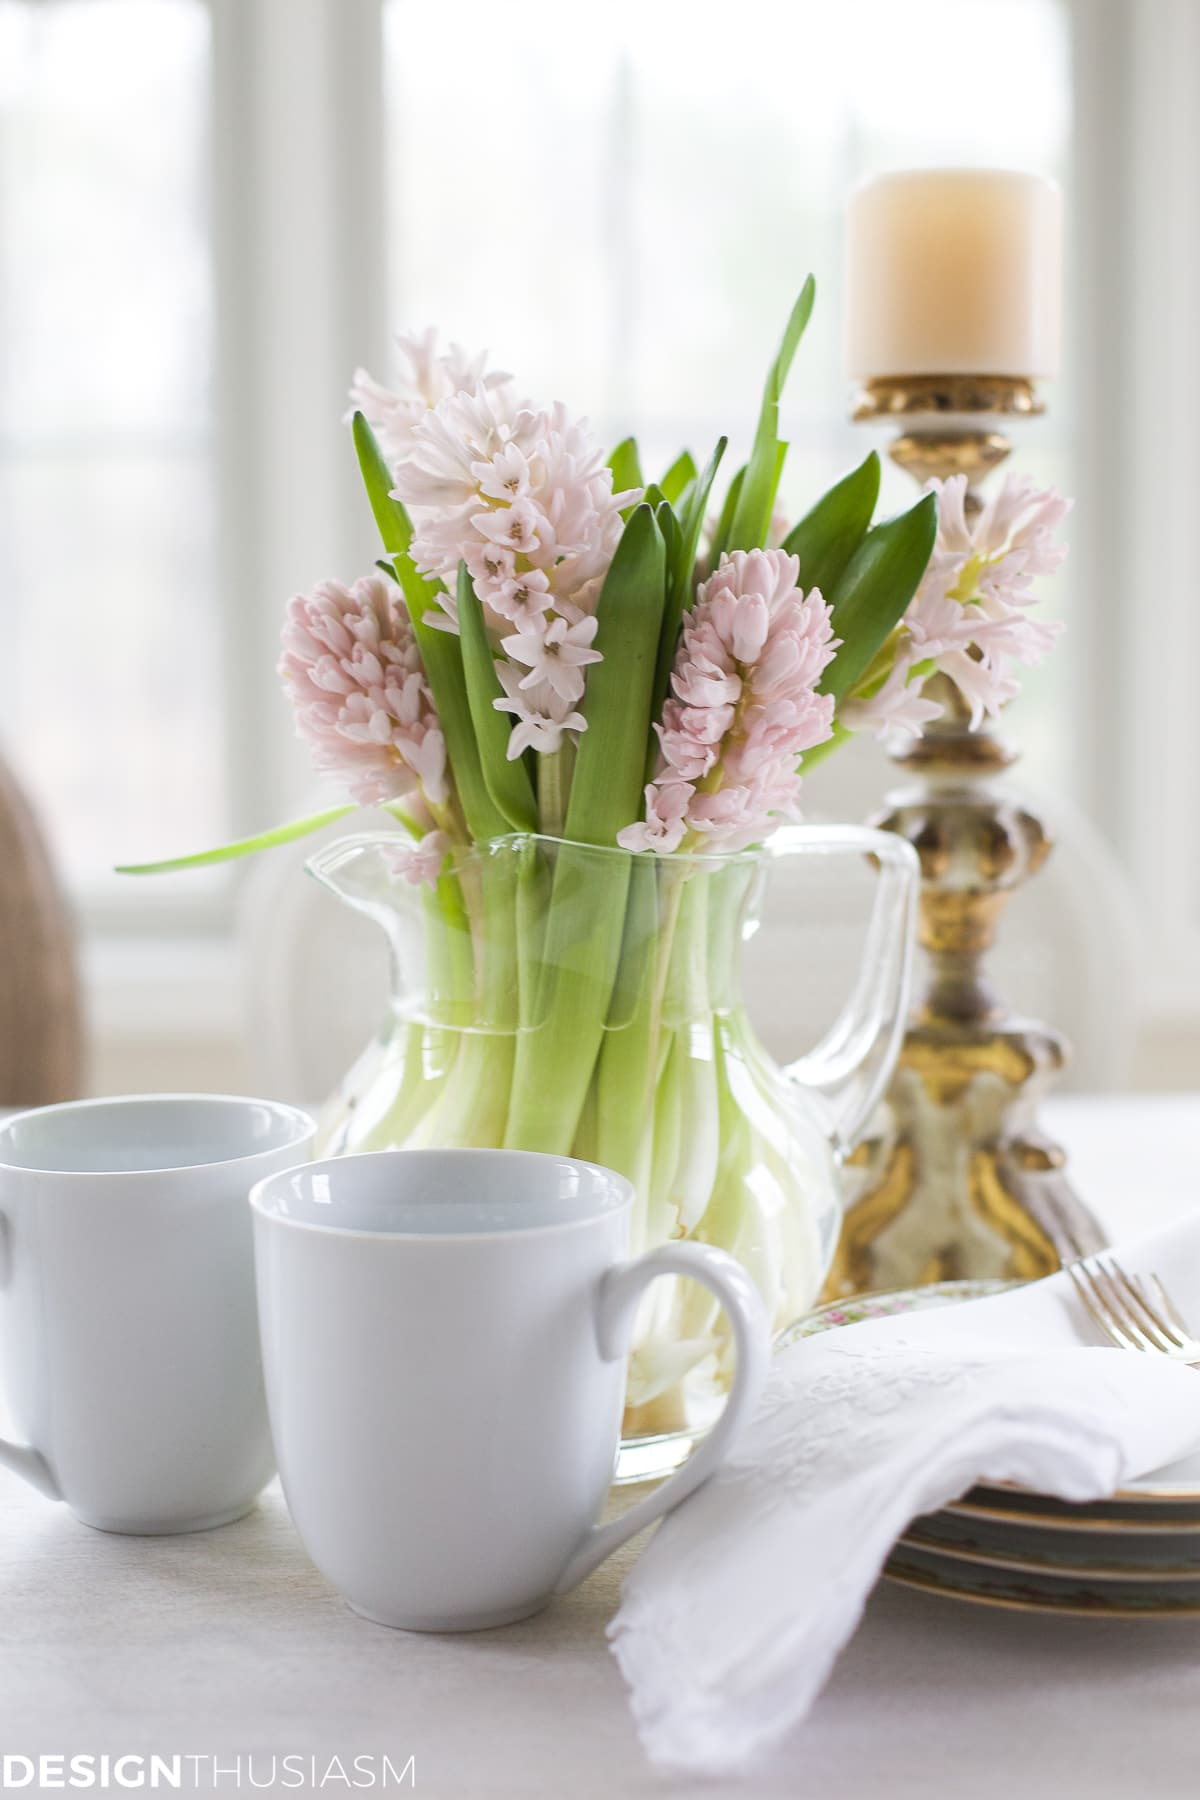 French Country breakfast table with pink hyacinths | designthusiasm.com